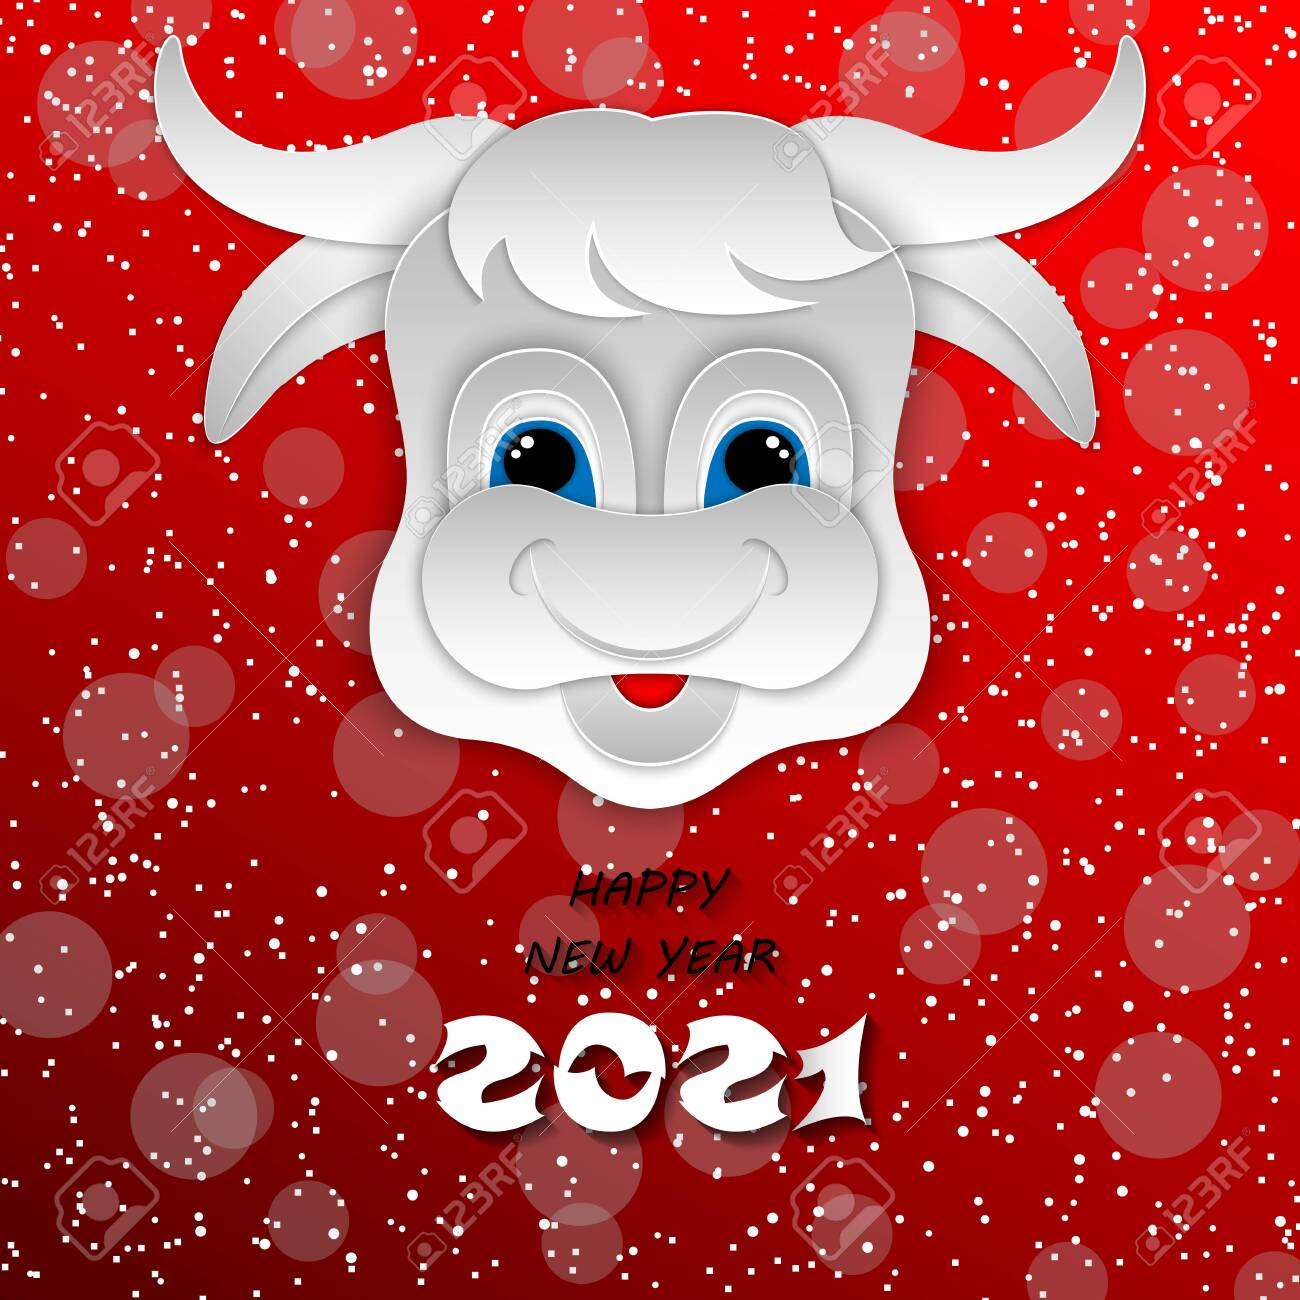 happy chinese new year 2021 ox zodiac sign paper cut art craft royalty free cliparts vectors and stock illustration image 133301068 123rf com